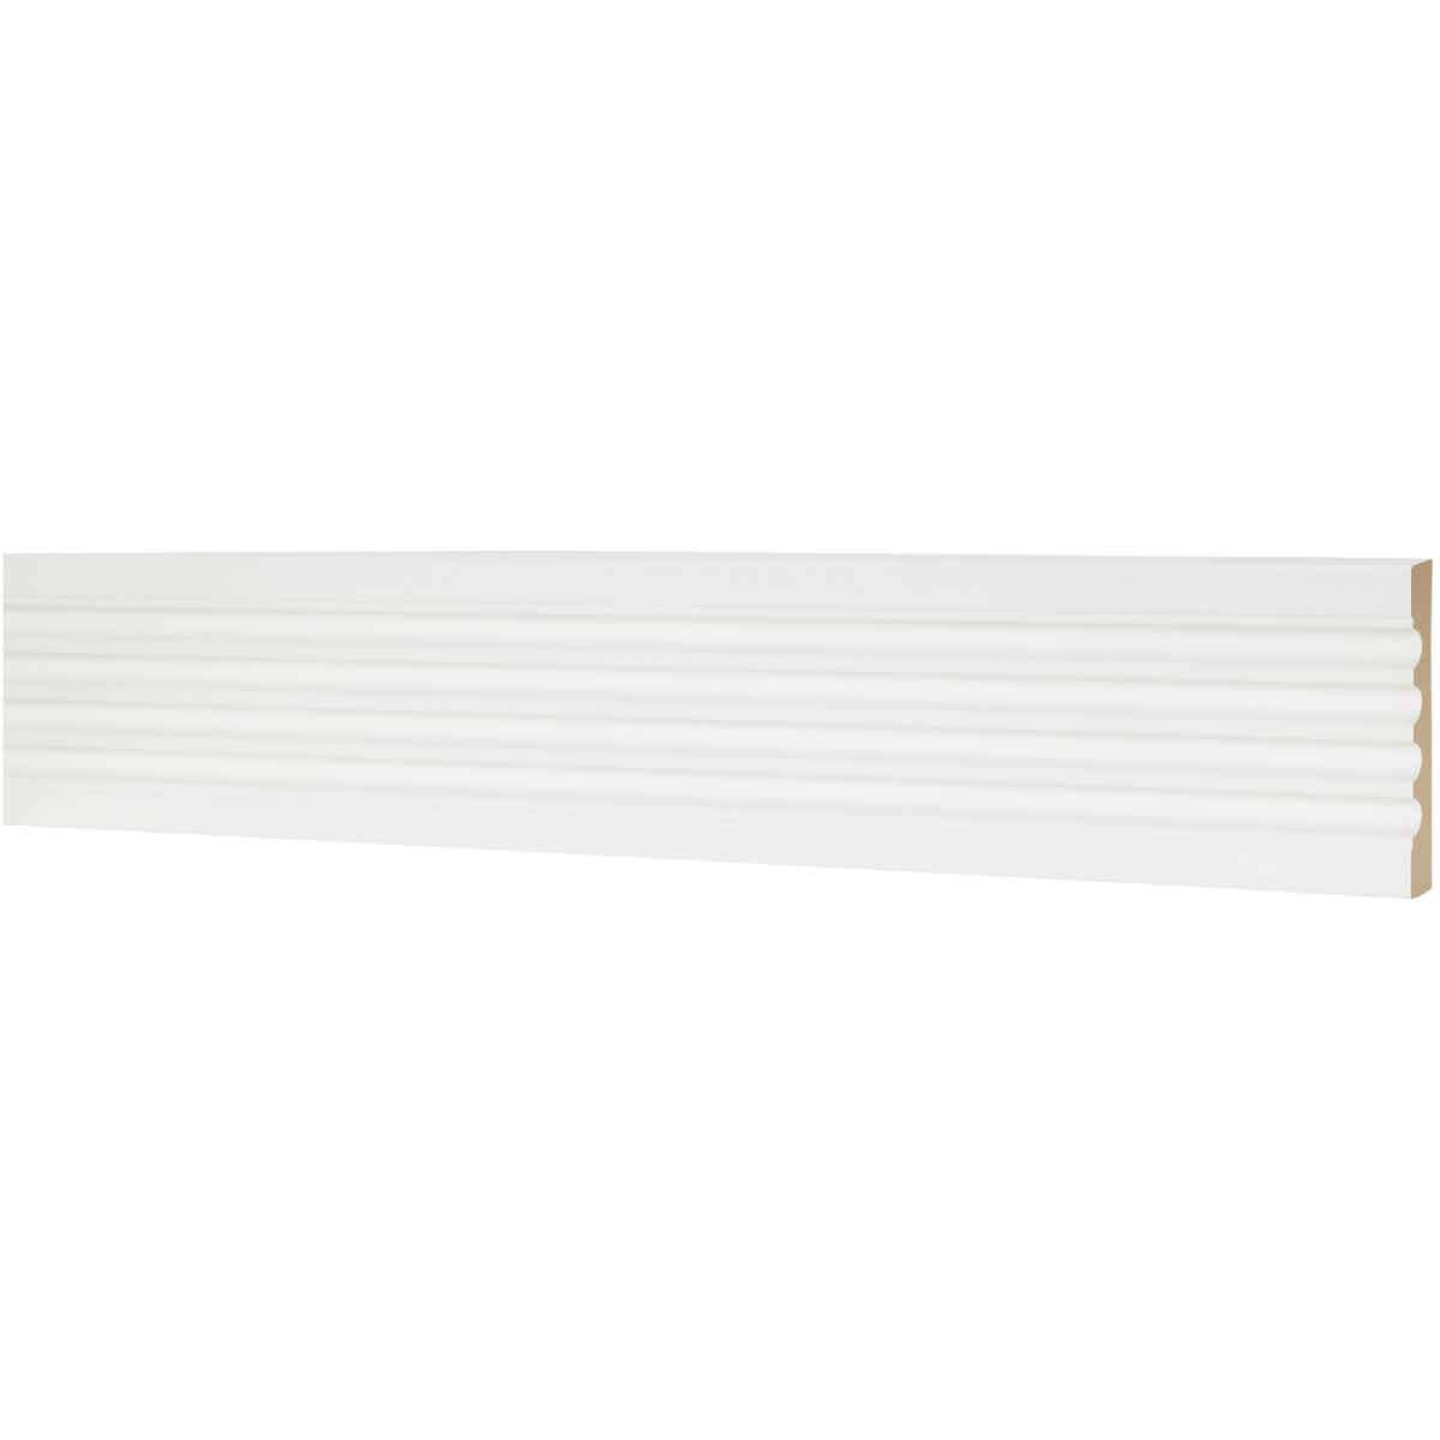 House of Fara 3/4 In. W. x 5-1/4 In. H. x 8 Ft. L. White MDF Fluted Casing Molding Image 2